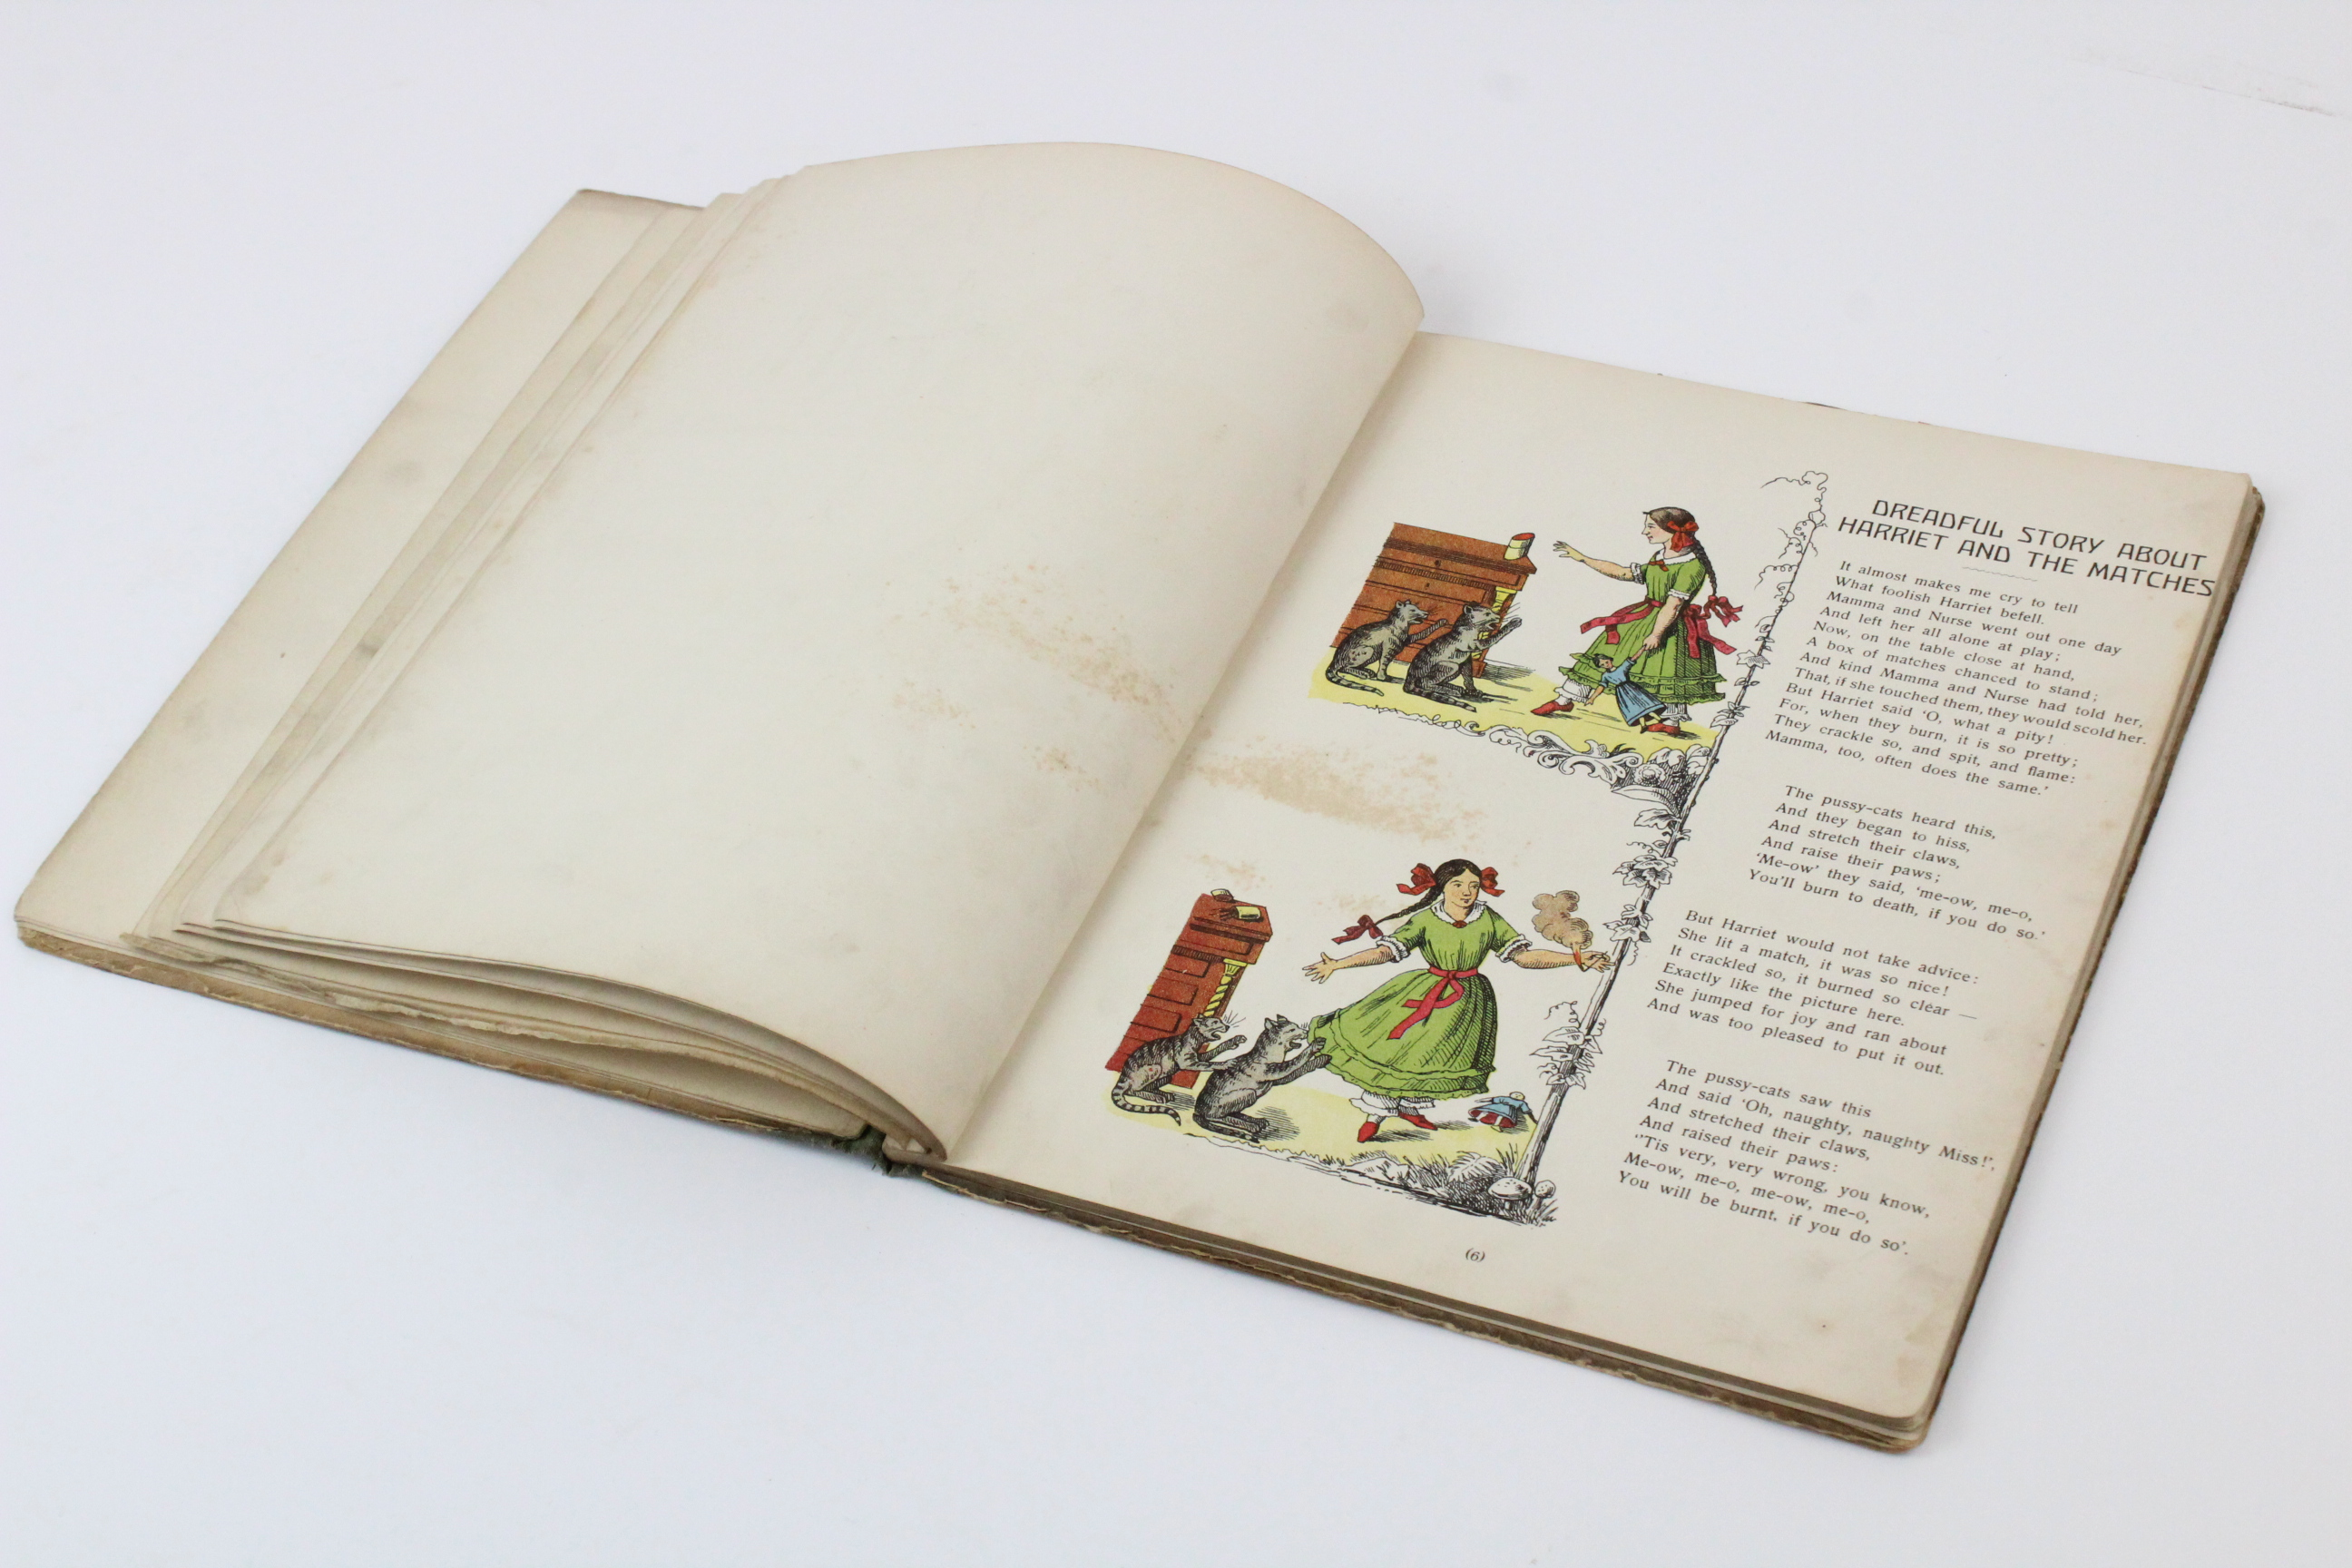 Hazelwood (C) et al, THE PAGEANT, 1897 edition, illustrated red boards, illustrated endpapers, - Image 9 of 16